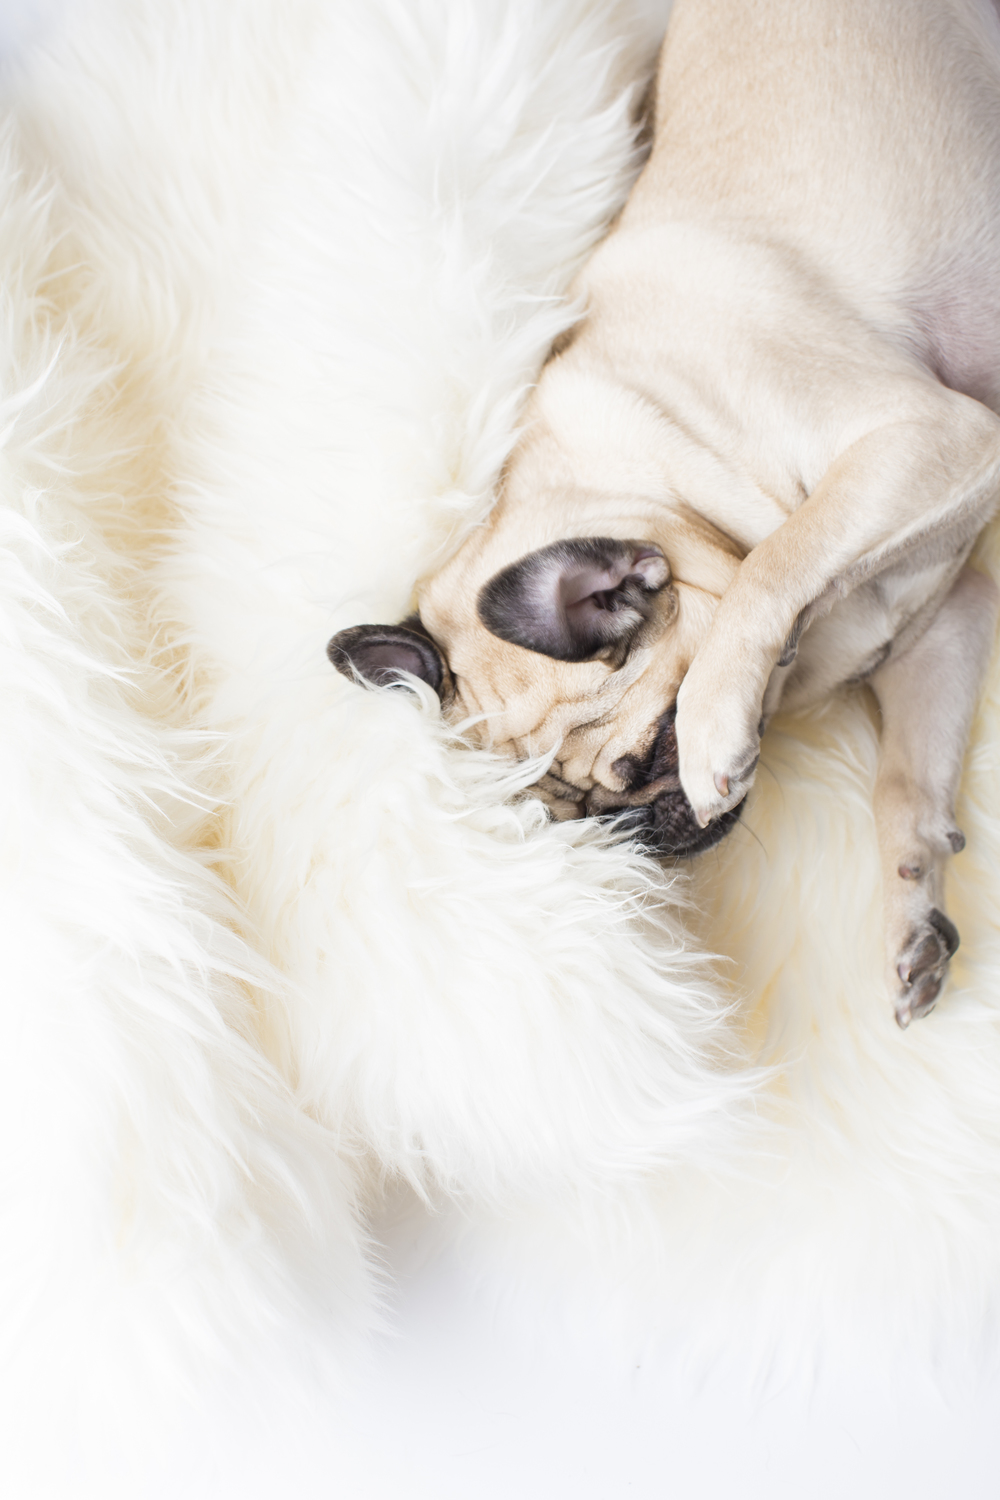 15 Pug rolling playing paw on white fur rug pet photography studio session.jpg